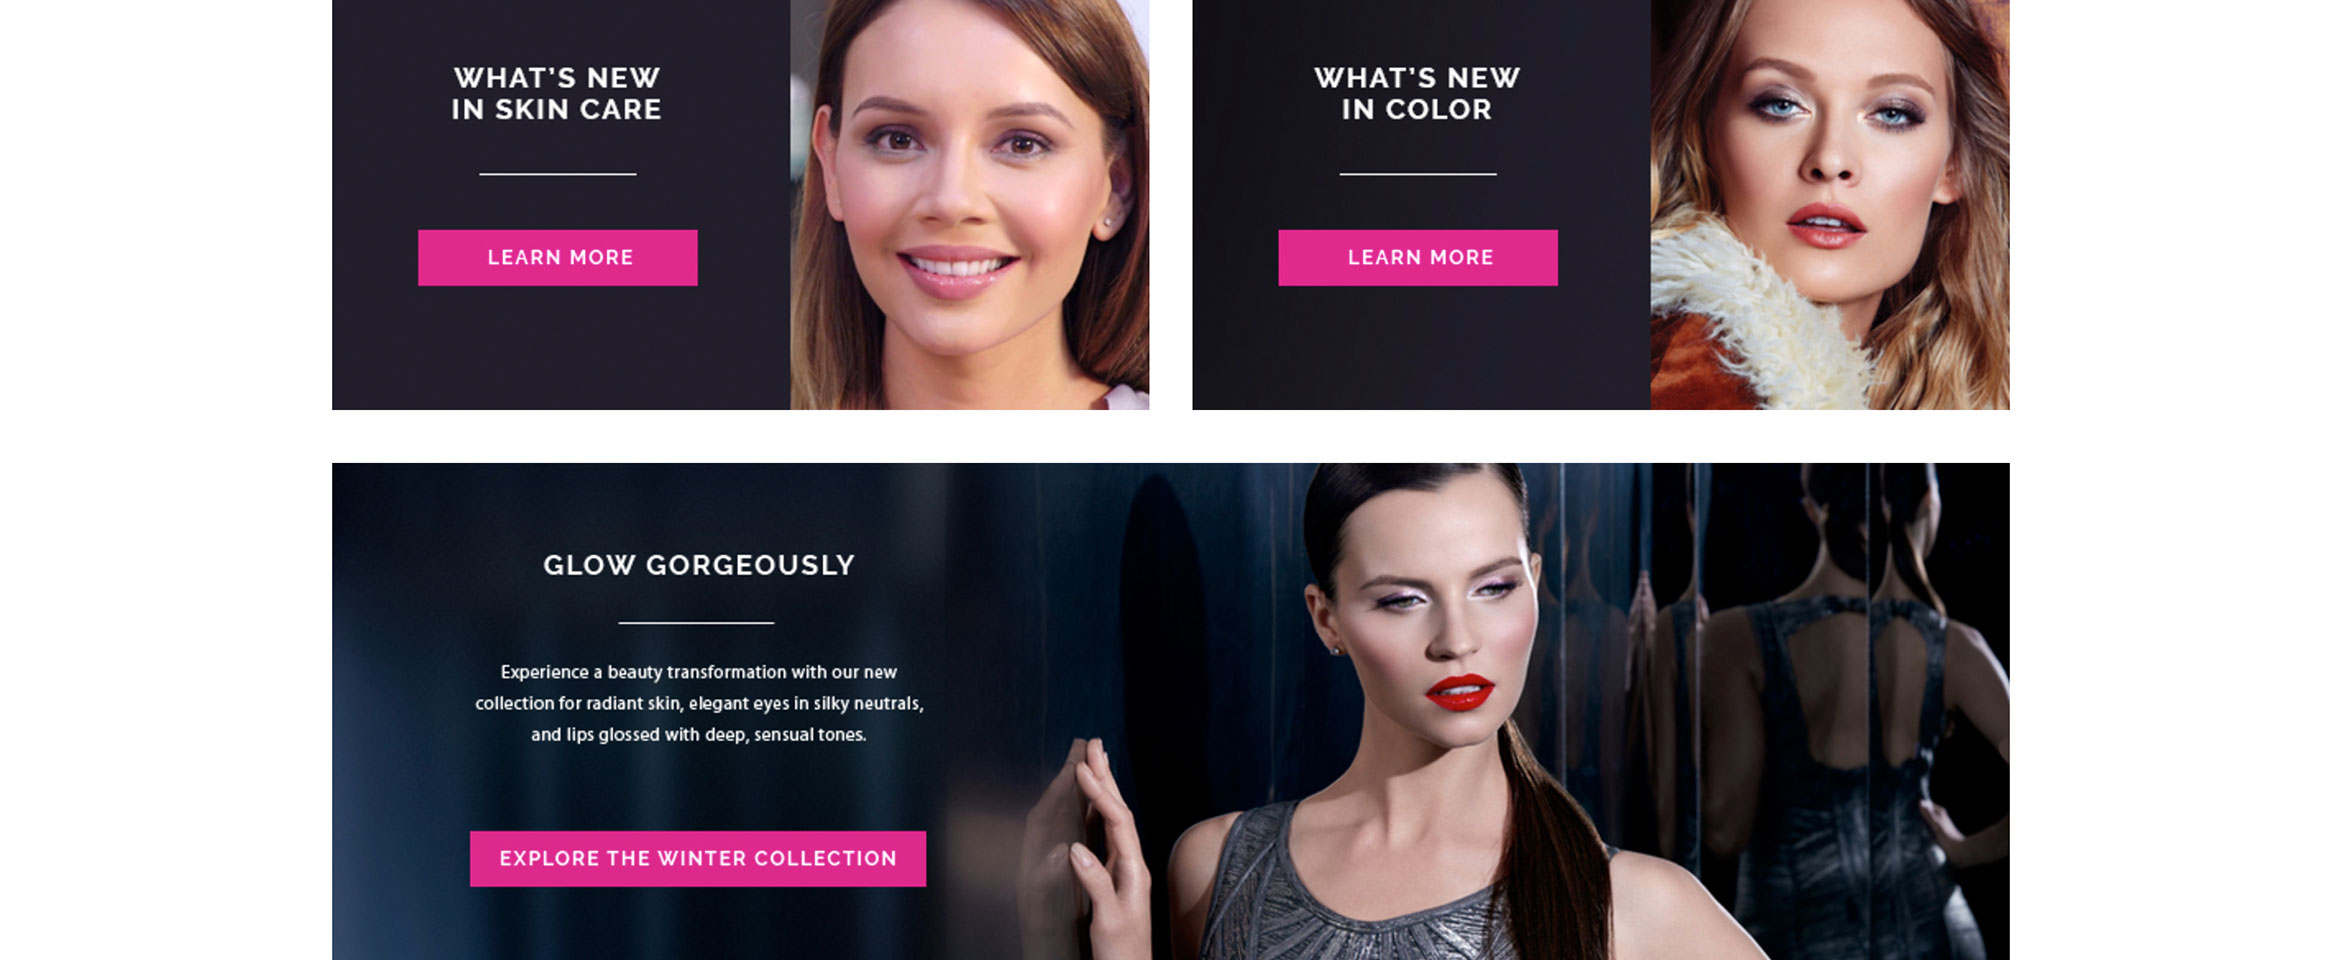 Helping a Cosmetic Company Look and Feel Their Very Best Online Build Image-1